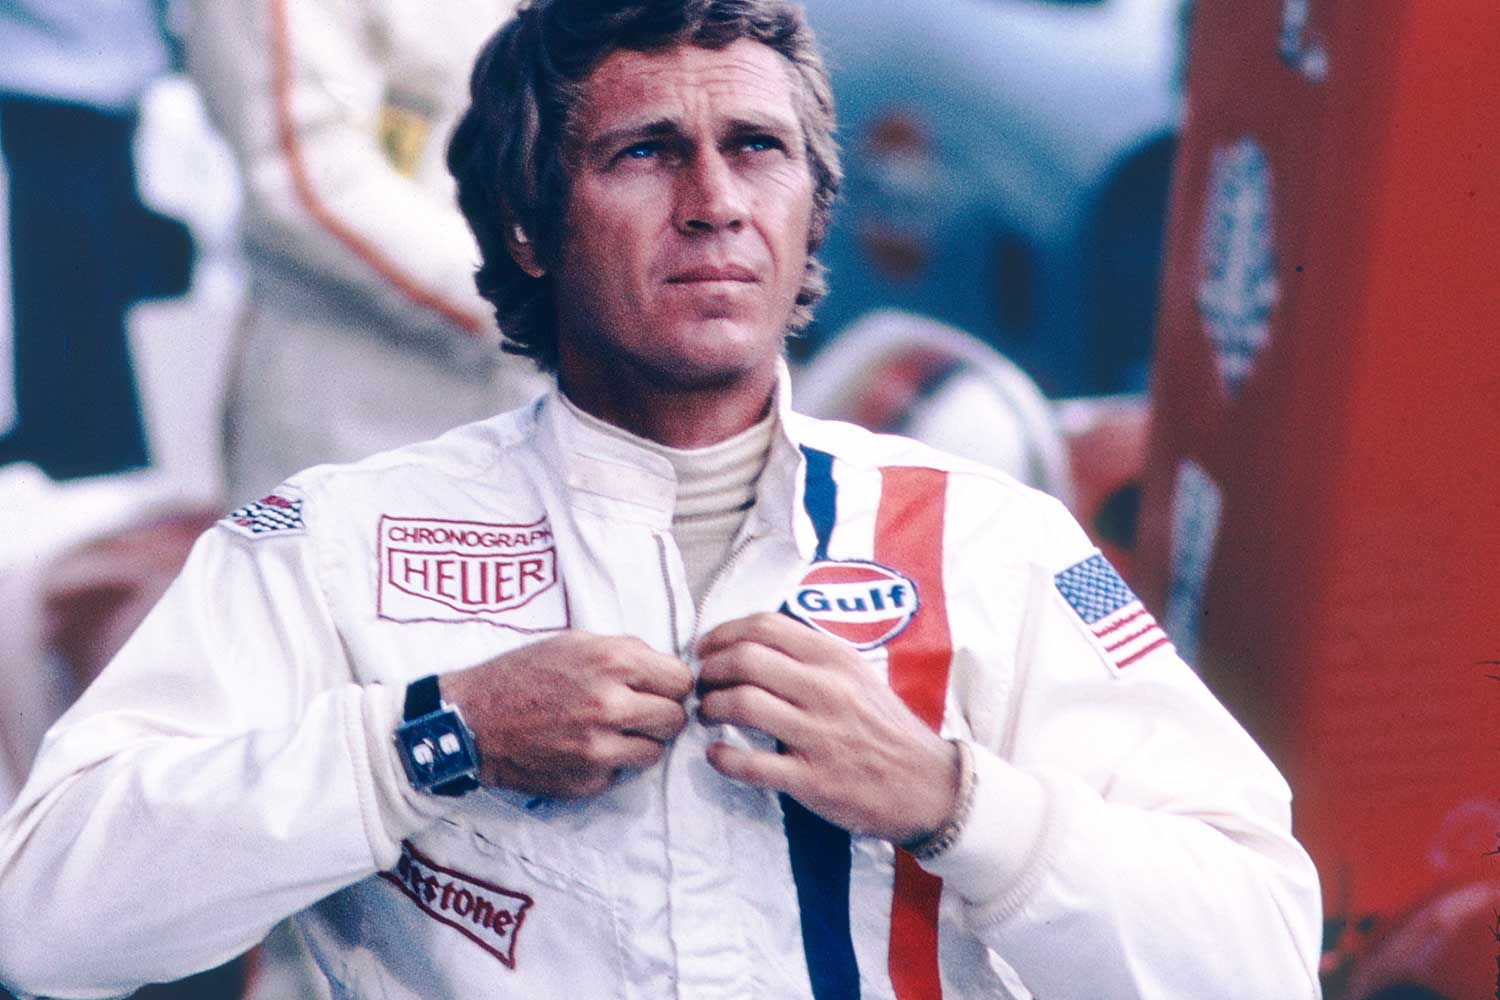 Steve McQueen on the set of Le Mans wearing the Heuer Monaco, that has now become synonymous with the film and his own name, even though the watch wasn't a personal watch of his (Image: TAG Heuer)